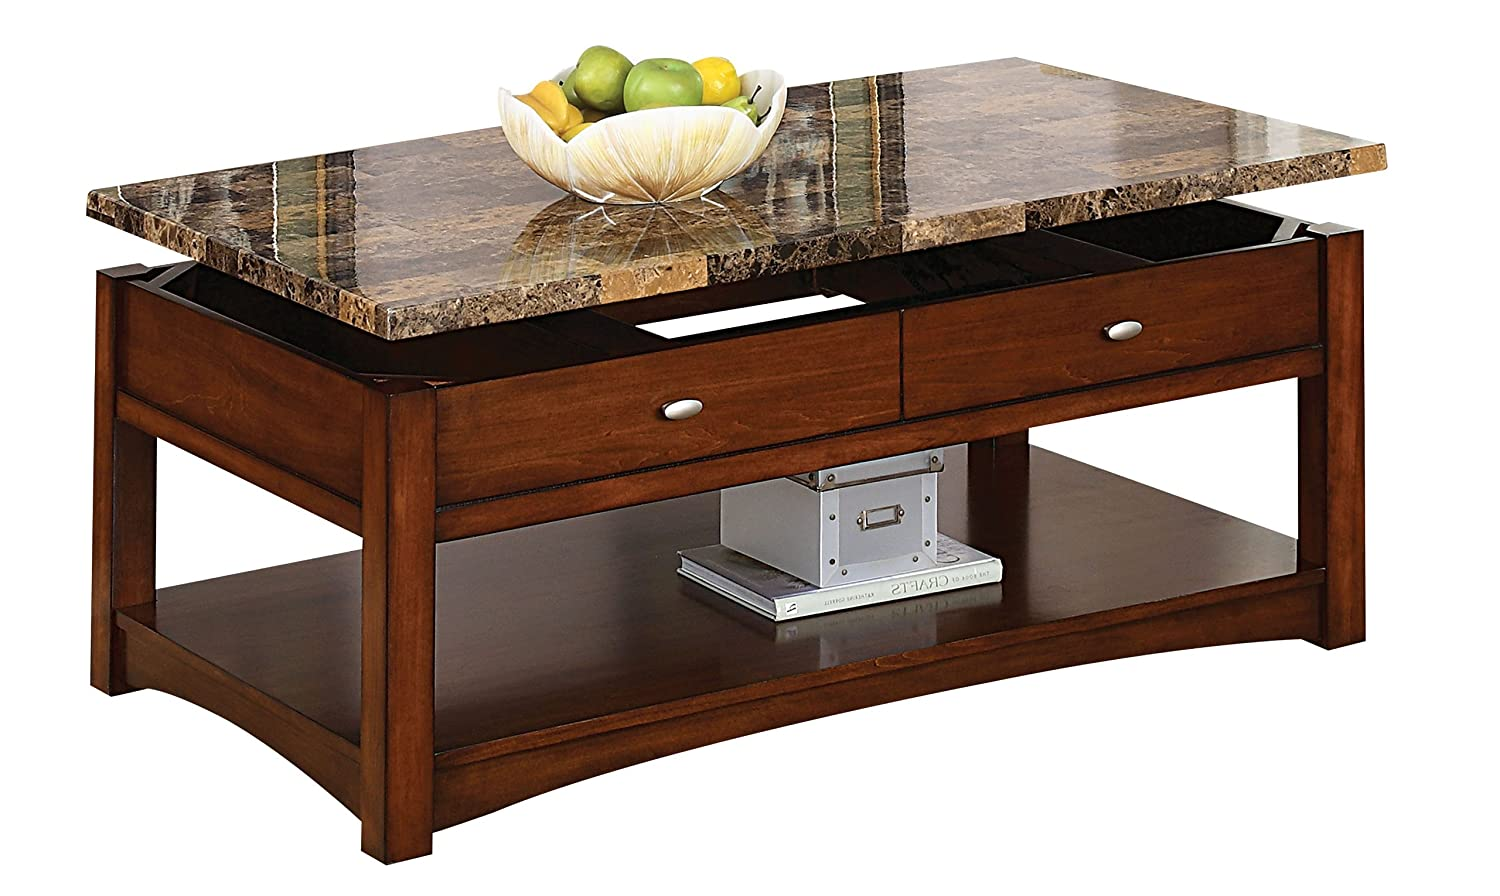 Amazon Com Acme 80020 Jas Faux Marble Lift Top Coffee Table Cherry Finish Kitchen Dining